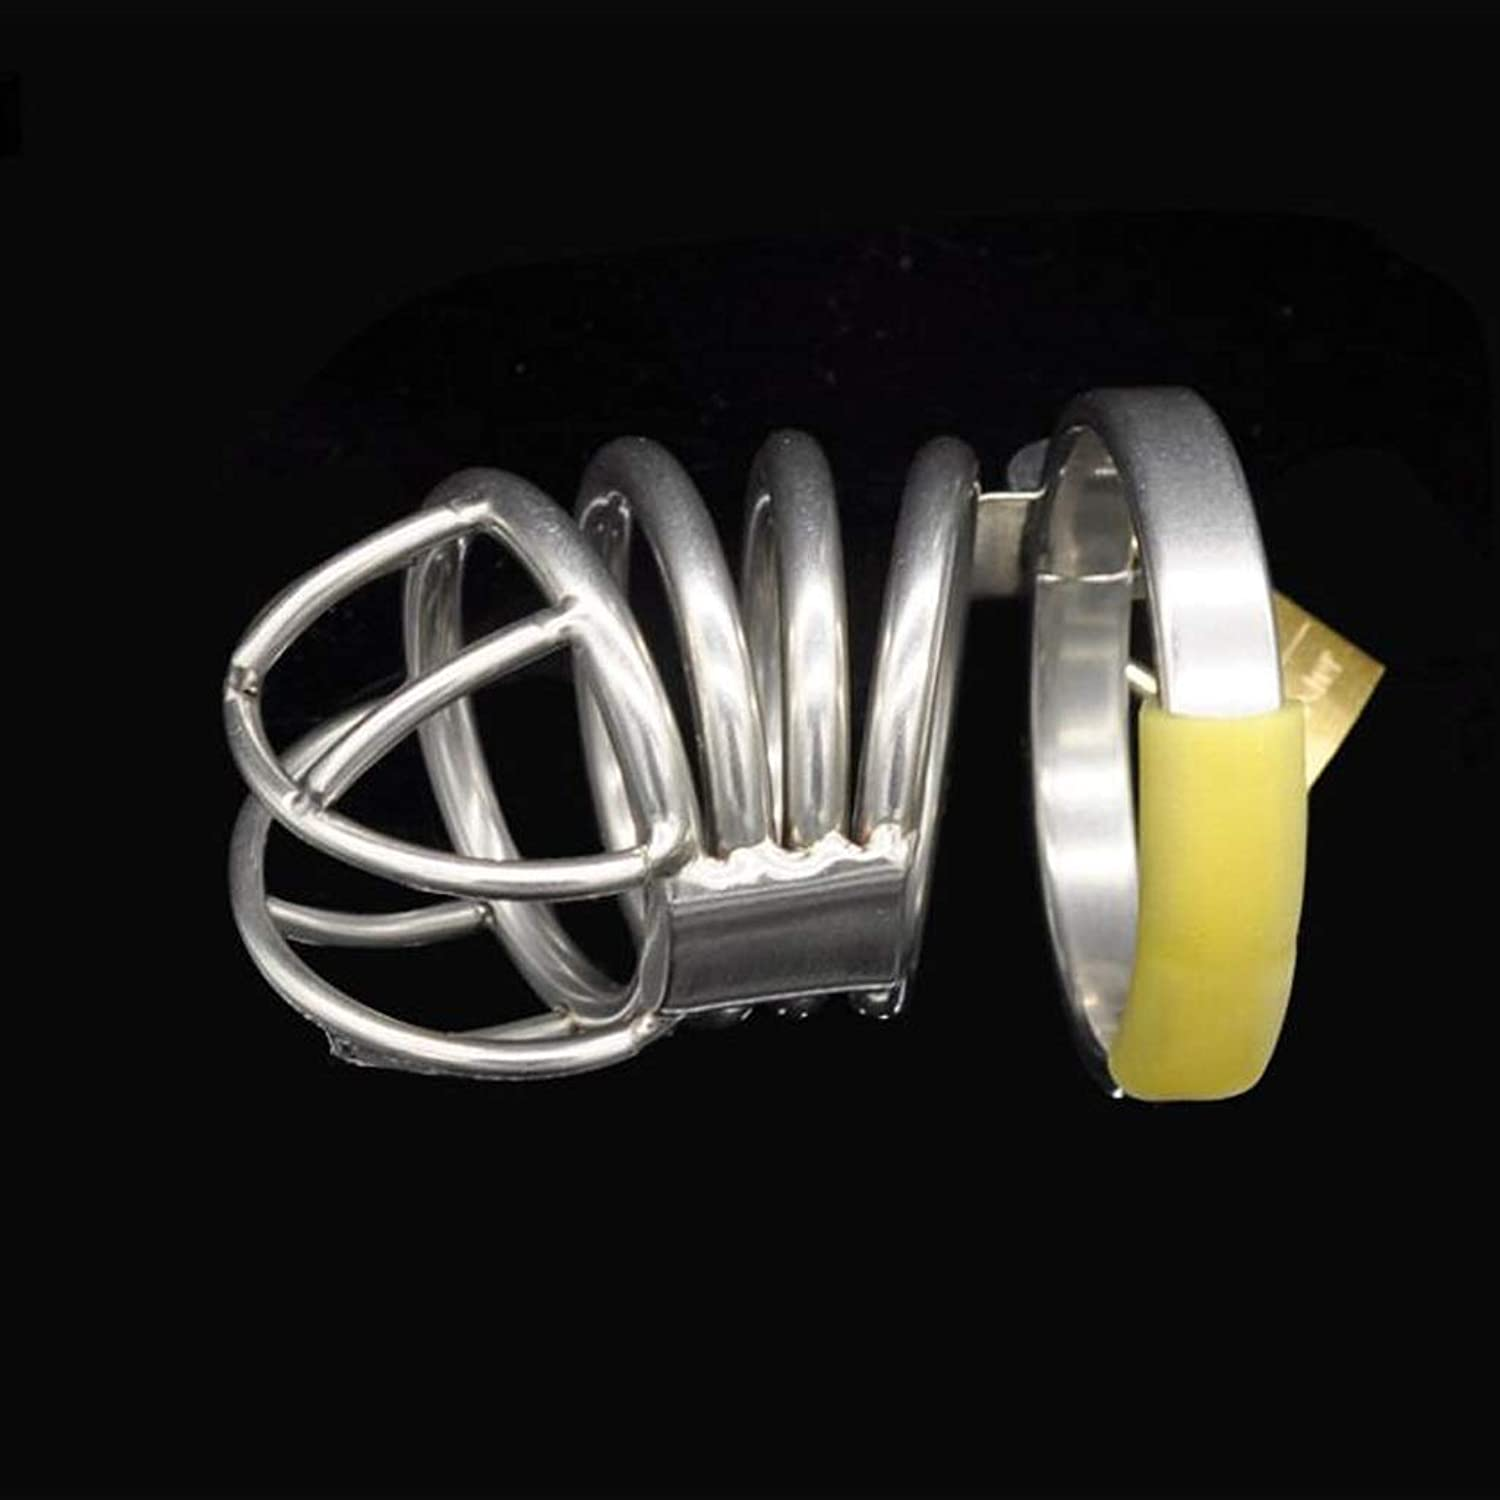 HZB toys Male Penile Lock Stainless Steel Chastity Device